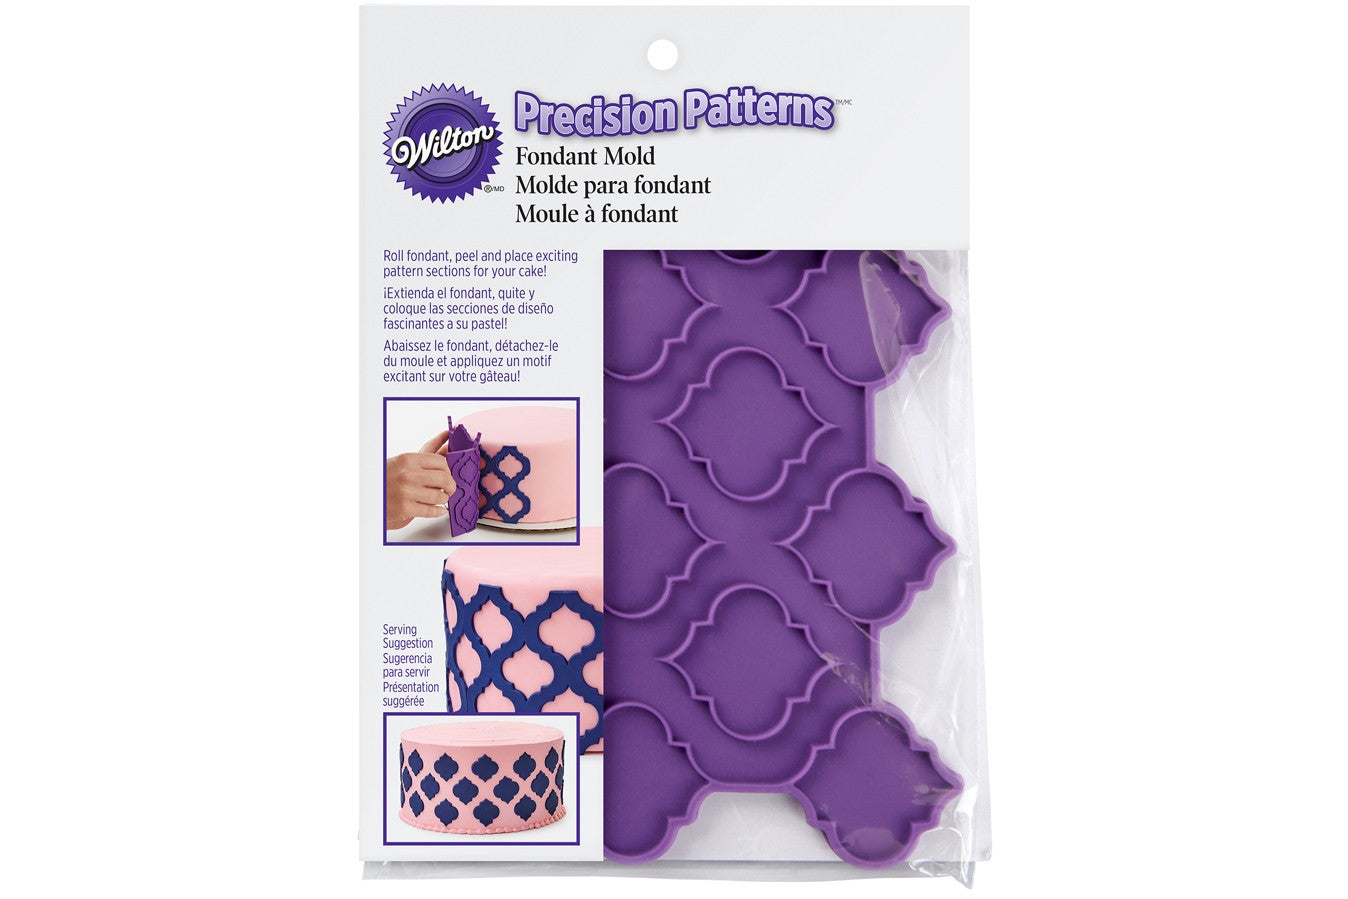 Wilton : Precision Patterns Trellis Mould